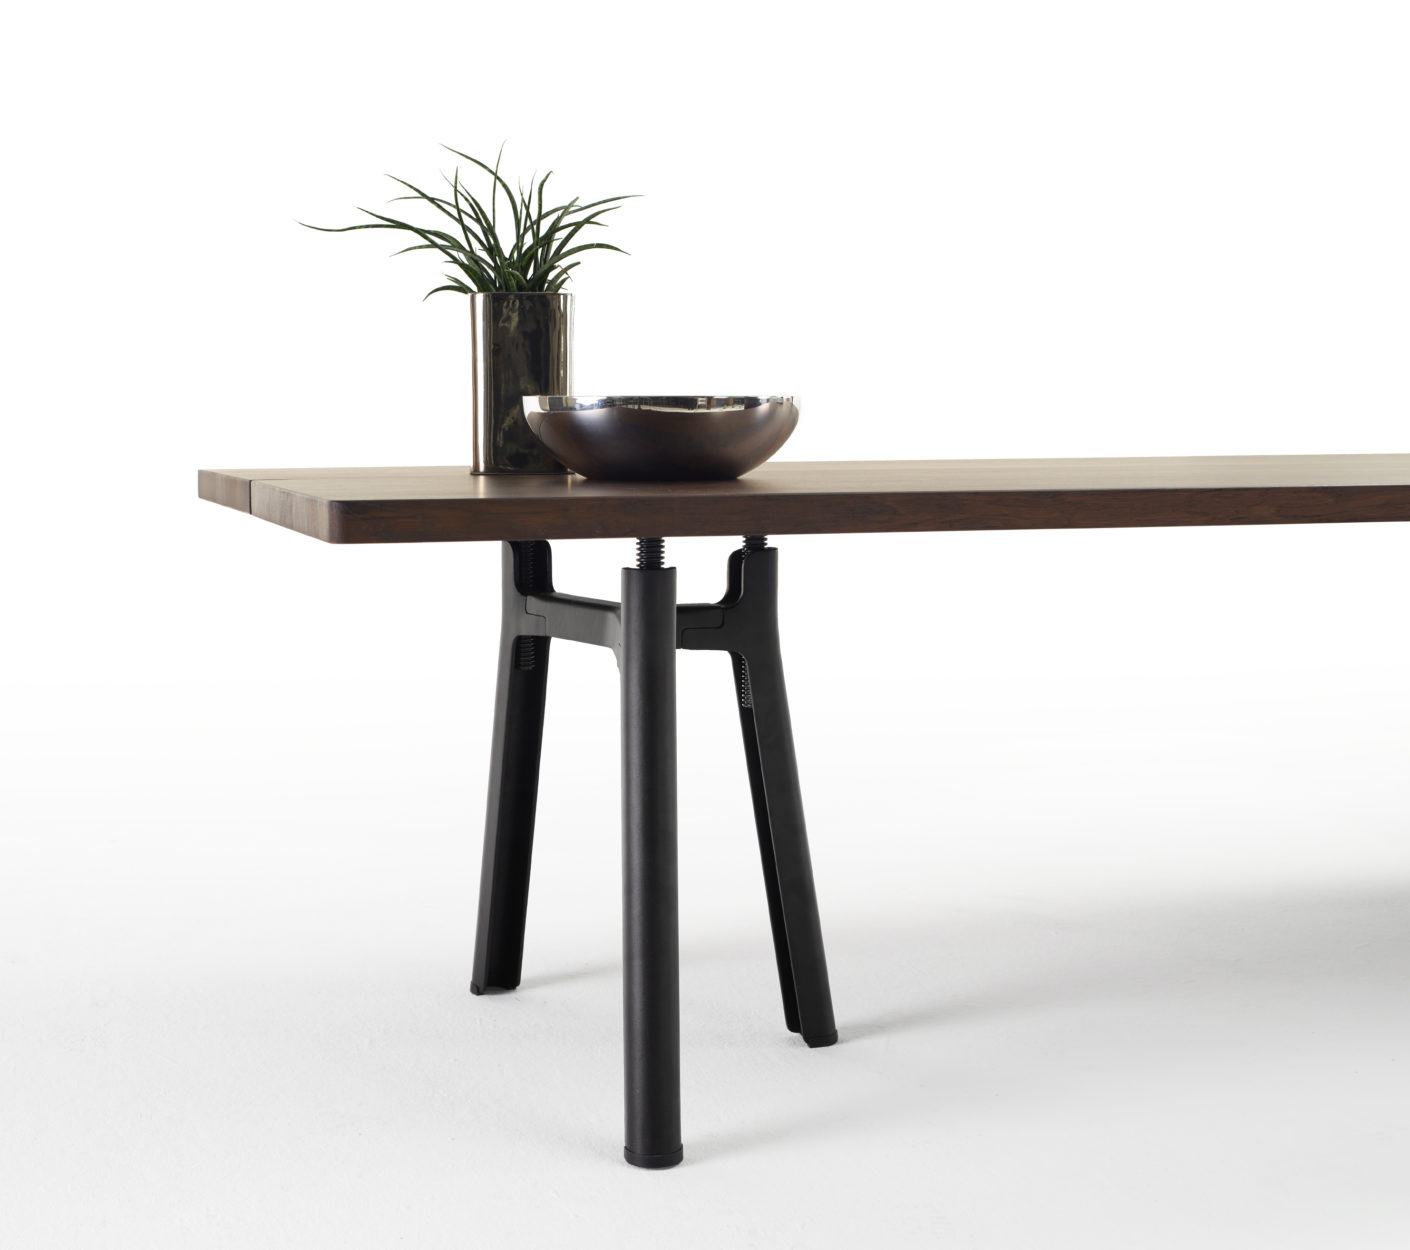 """Trestle"" can be manually adjusted in height by seven centimeters. The table top consists of two parts, which facilitates transport and orientation in the room."